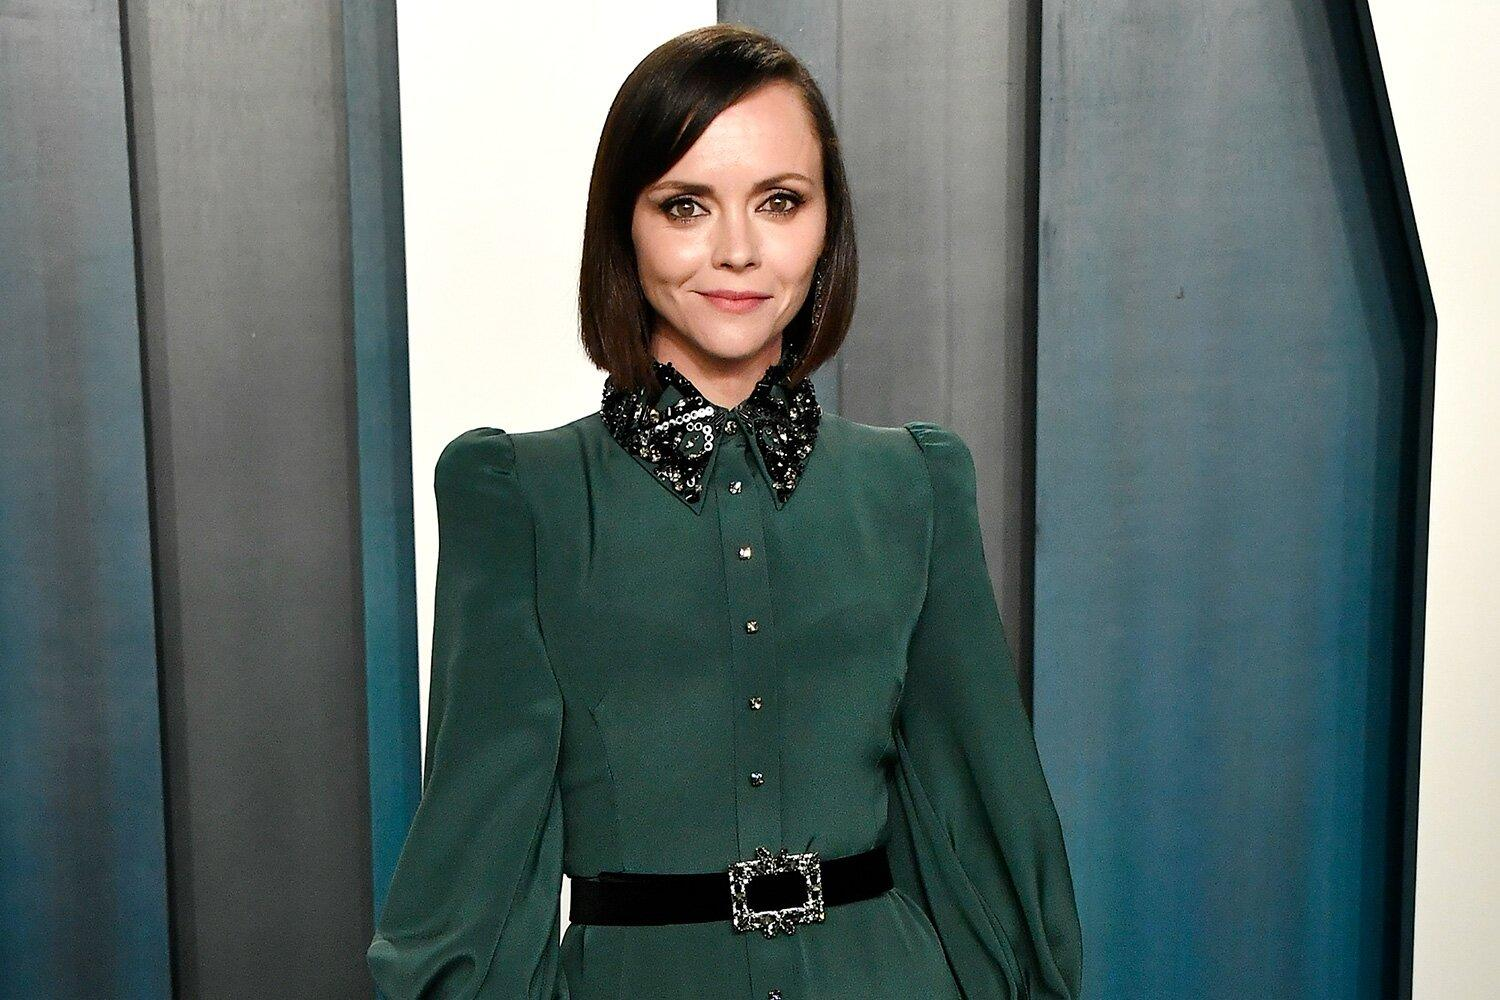 Christina Ricci Is Pregnant, Expecting Her Second Baby: 'Life Keeps Getting Better'